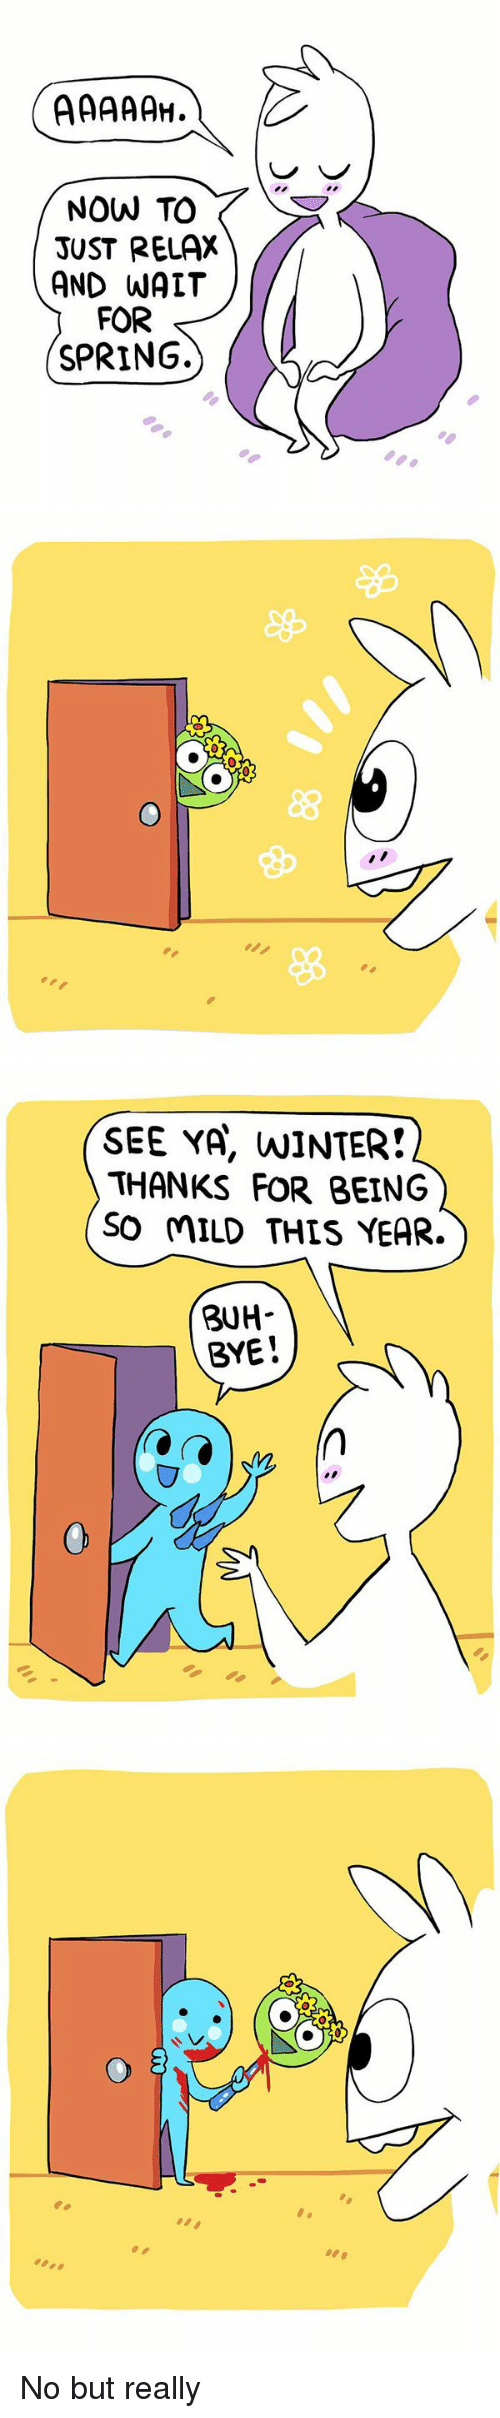 buh bye: NOW TO  JUST RELAX  AND WATT  FOR  SPRING.   O   SEE YA, NINTER!  THANKS FOR BEING  SO MILD THIS YEAR.  BUH  BYE   o 3 No but really